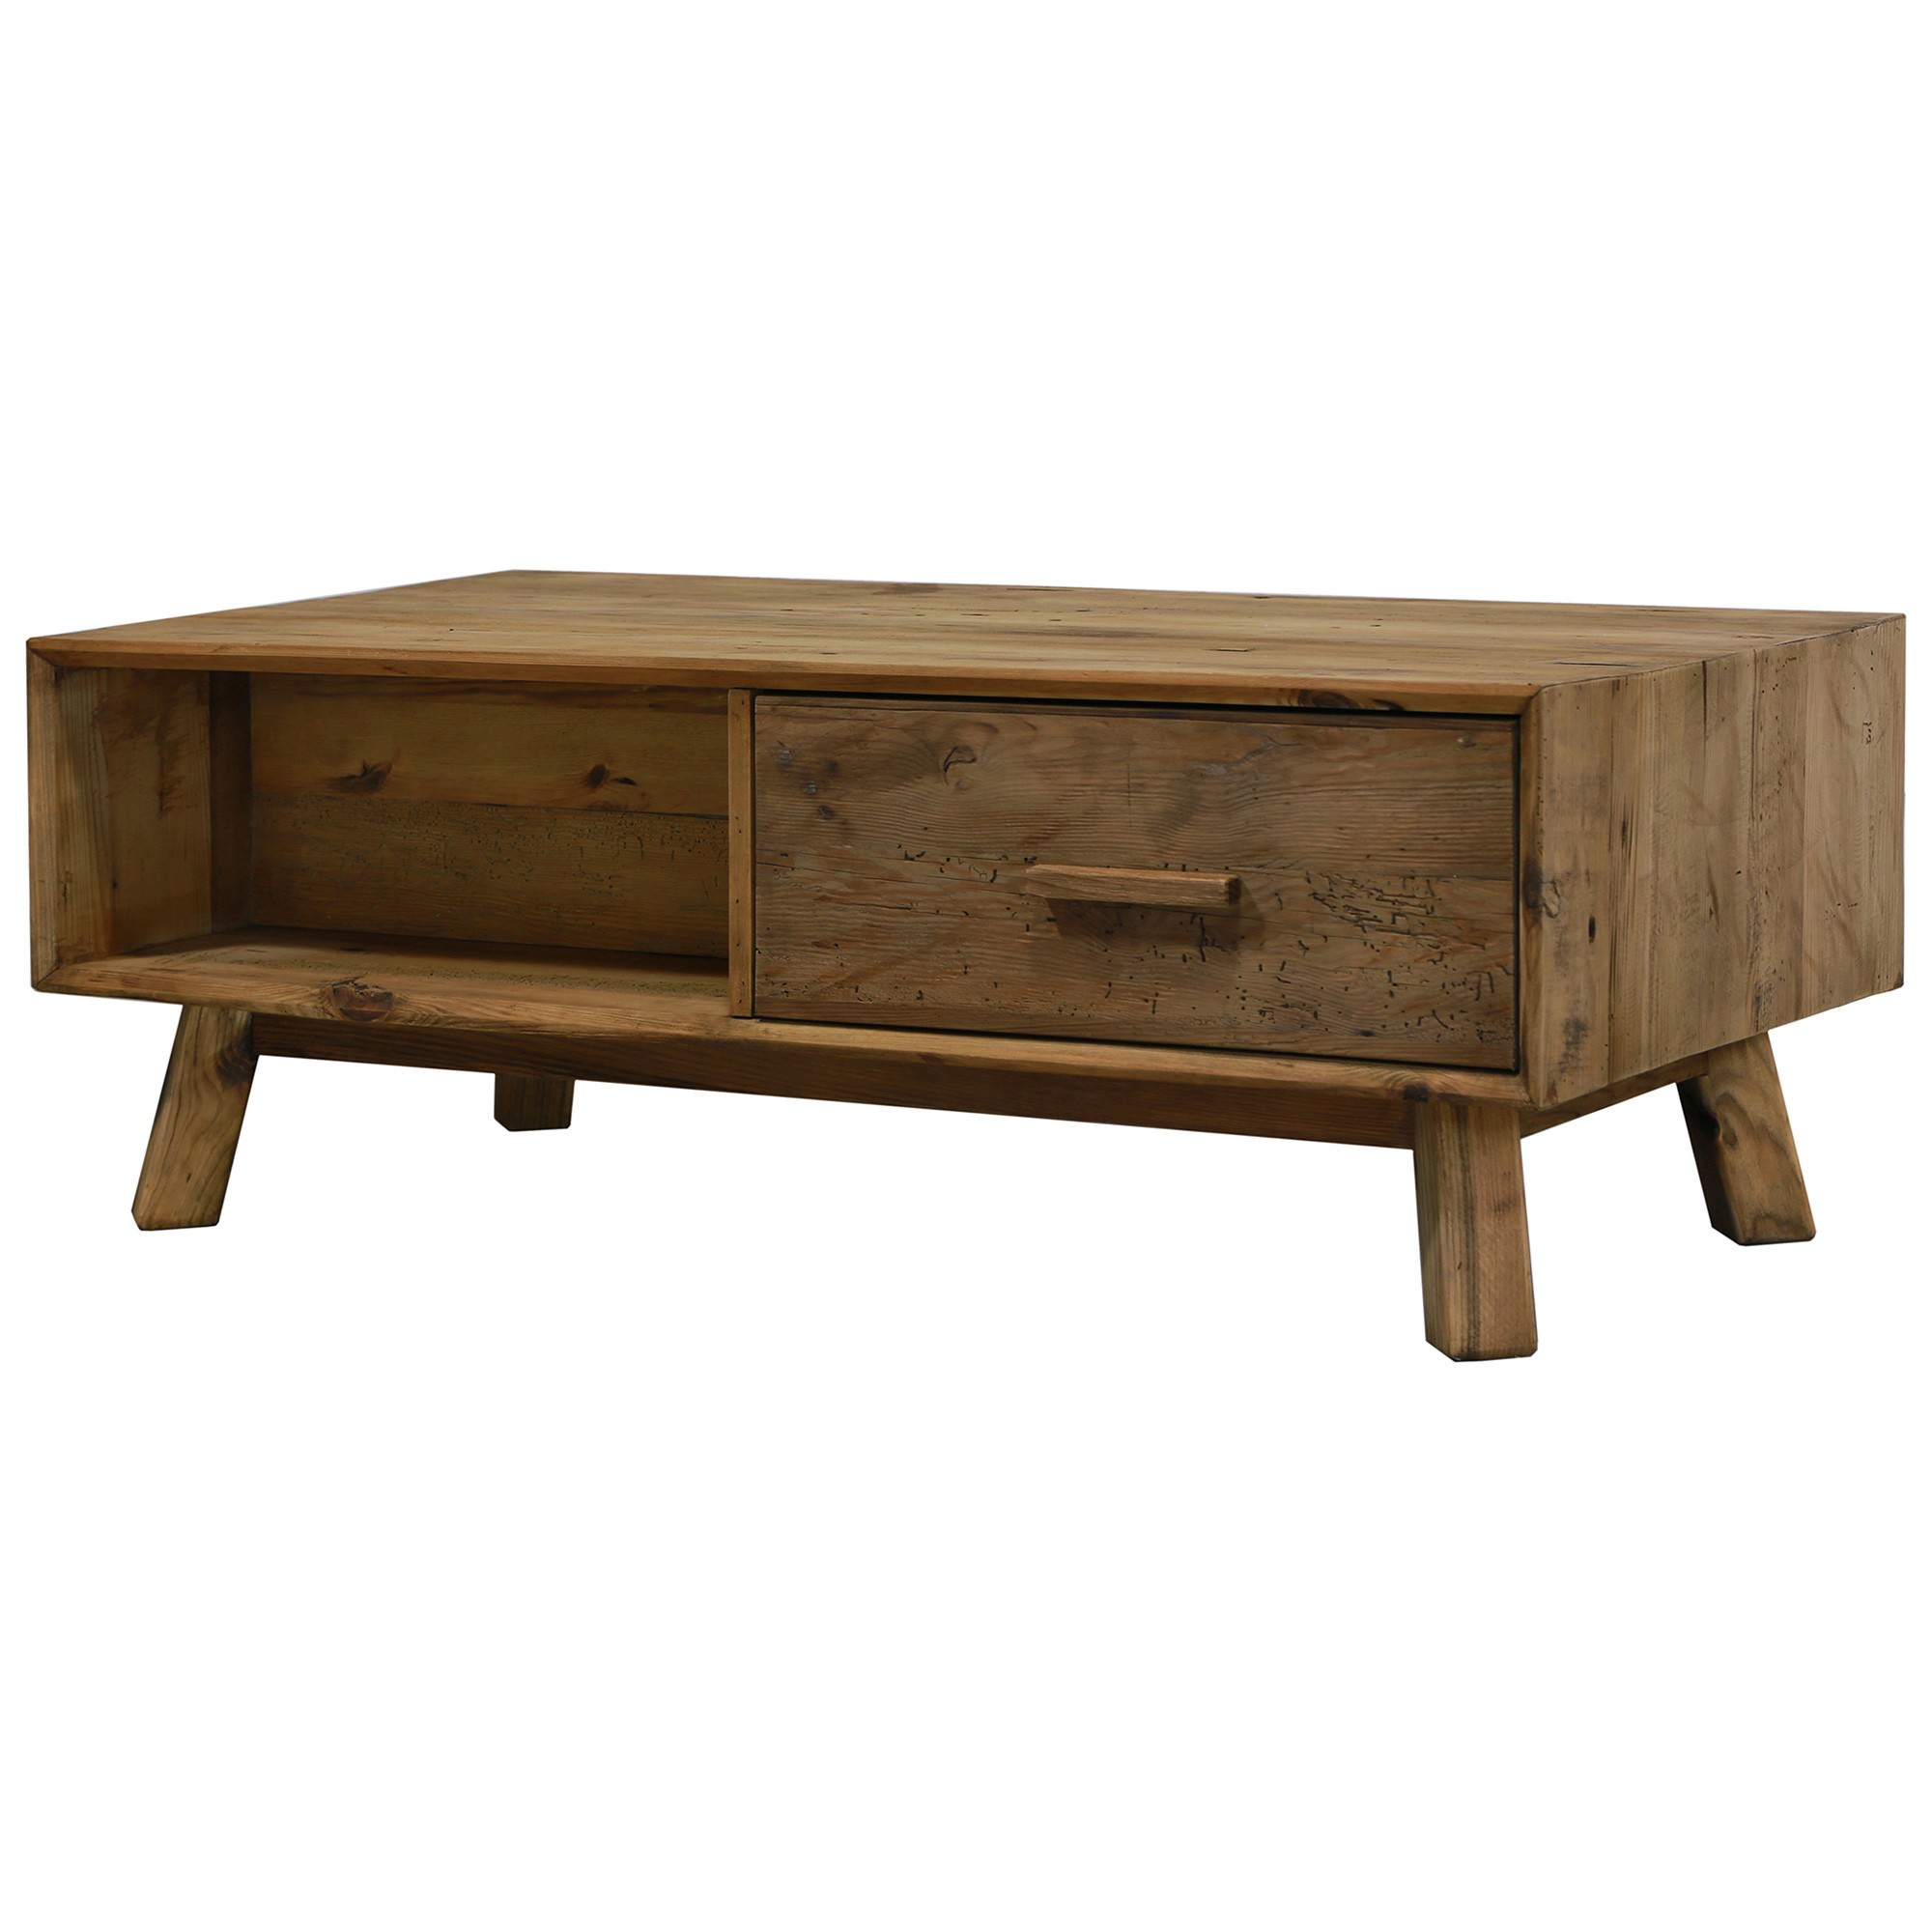 Mandalay Recycled Pine Timber Coffee Table, 122cm